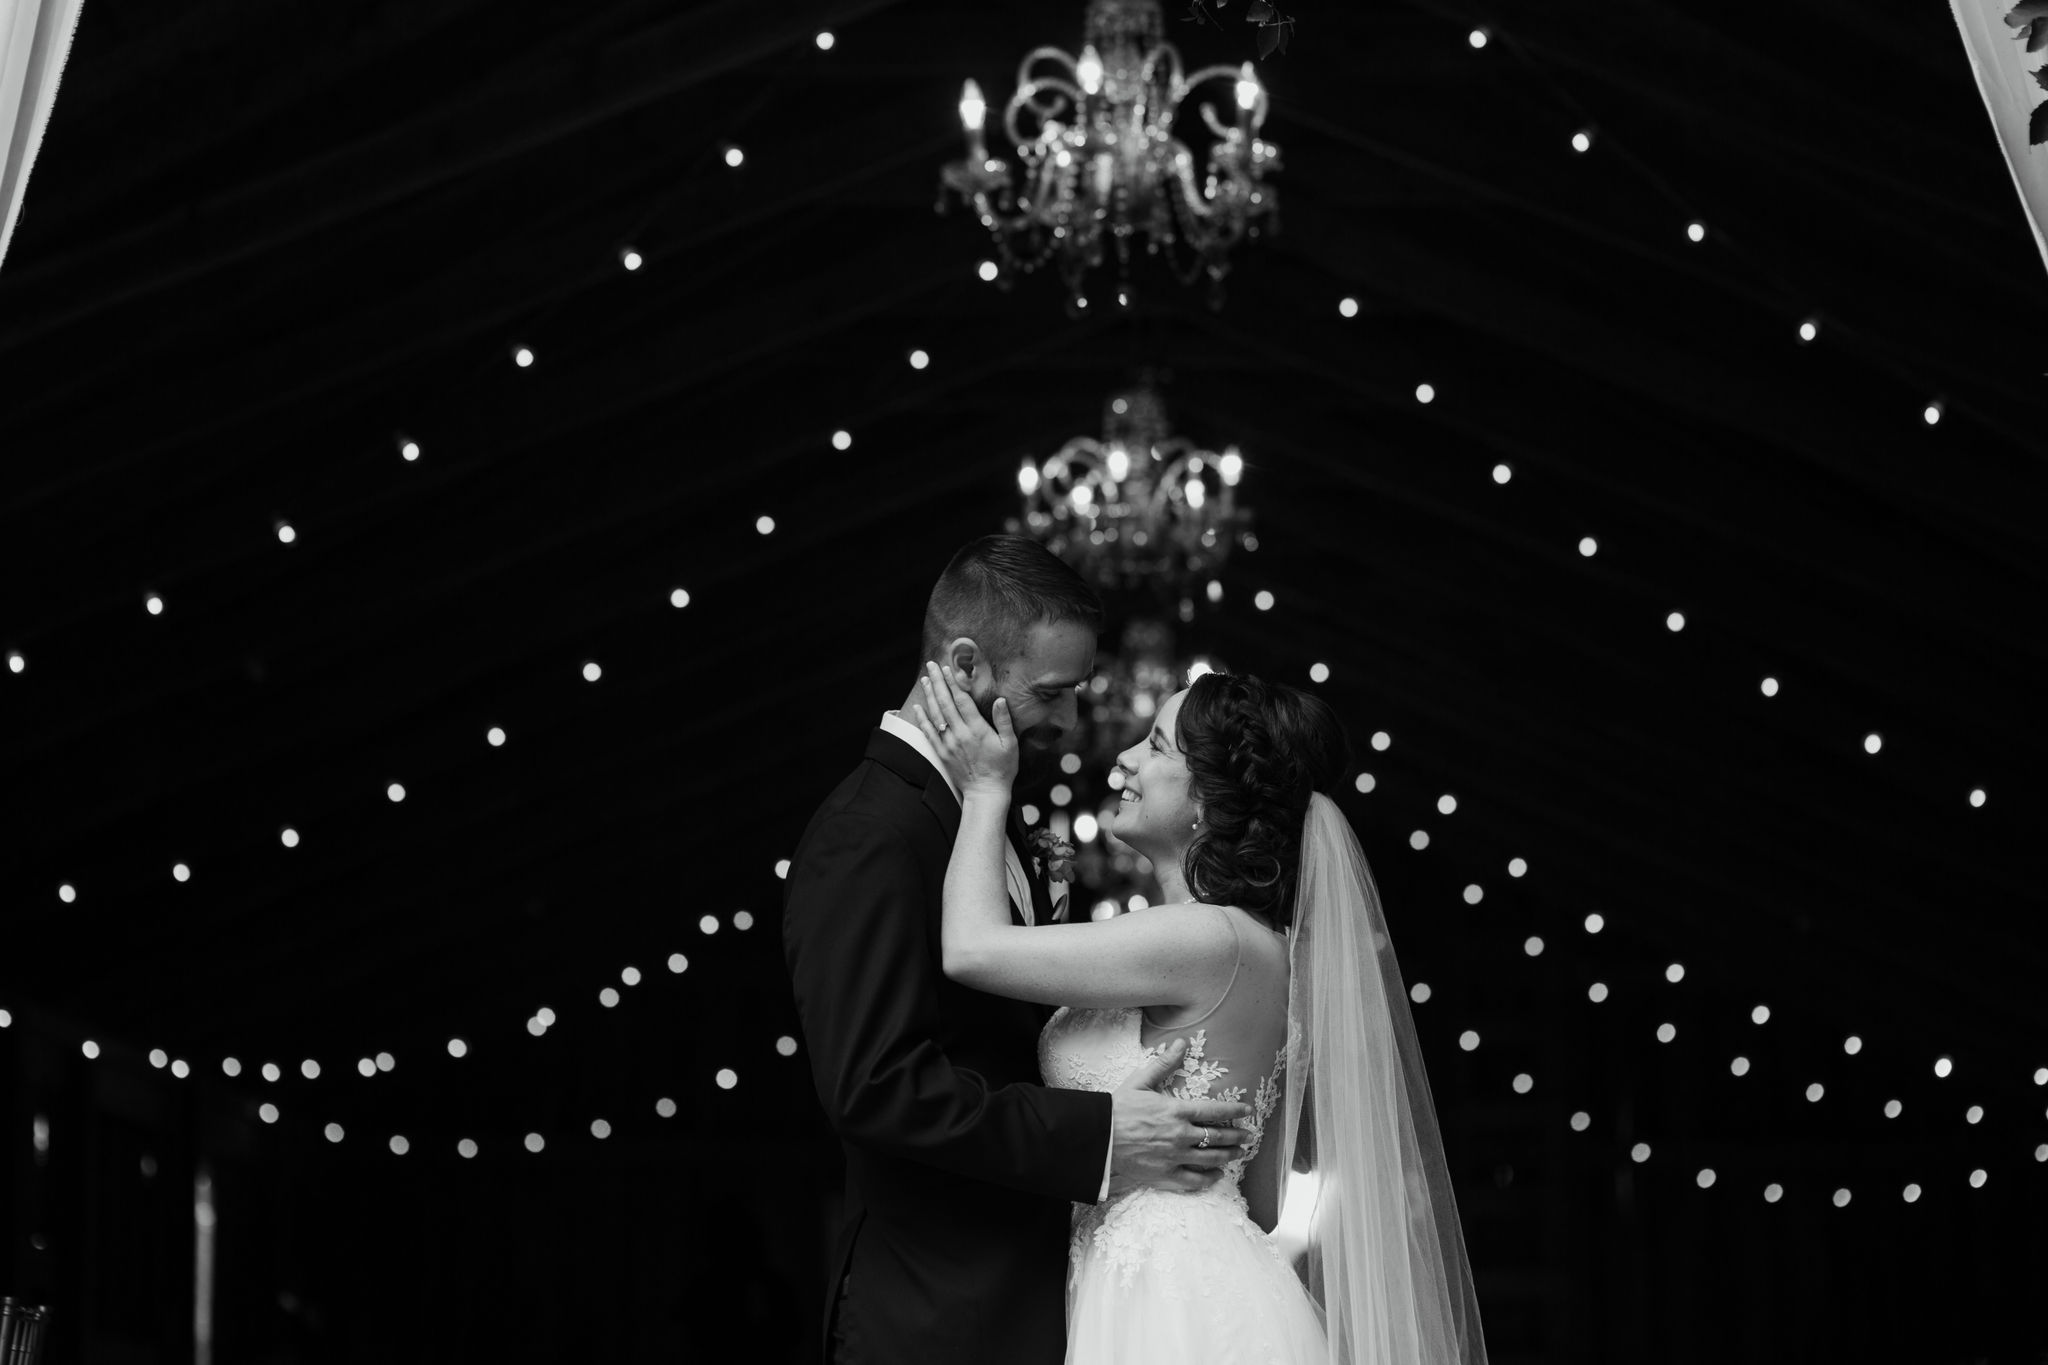 Kellsey&JasonWedding(Final)-174.jpg